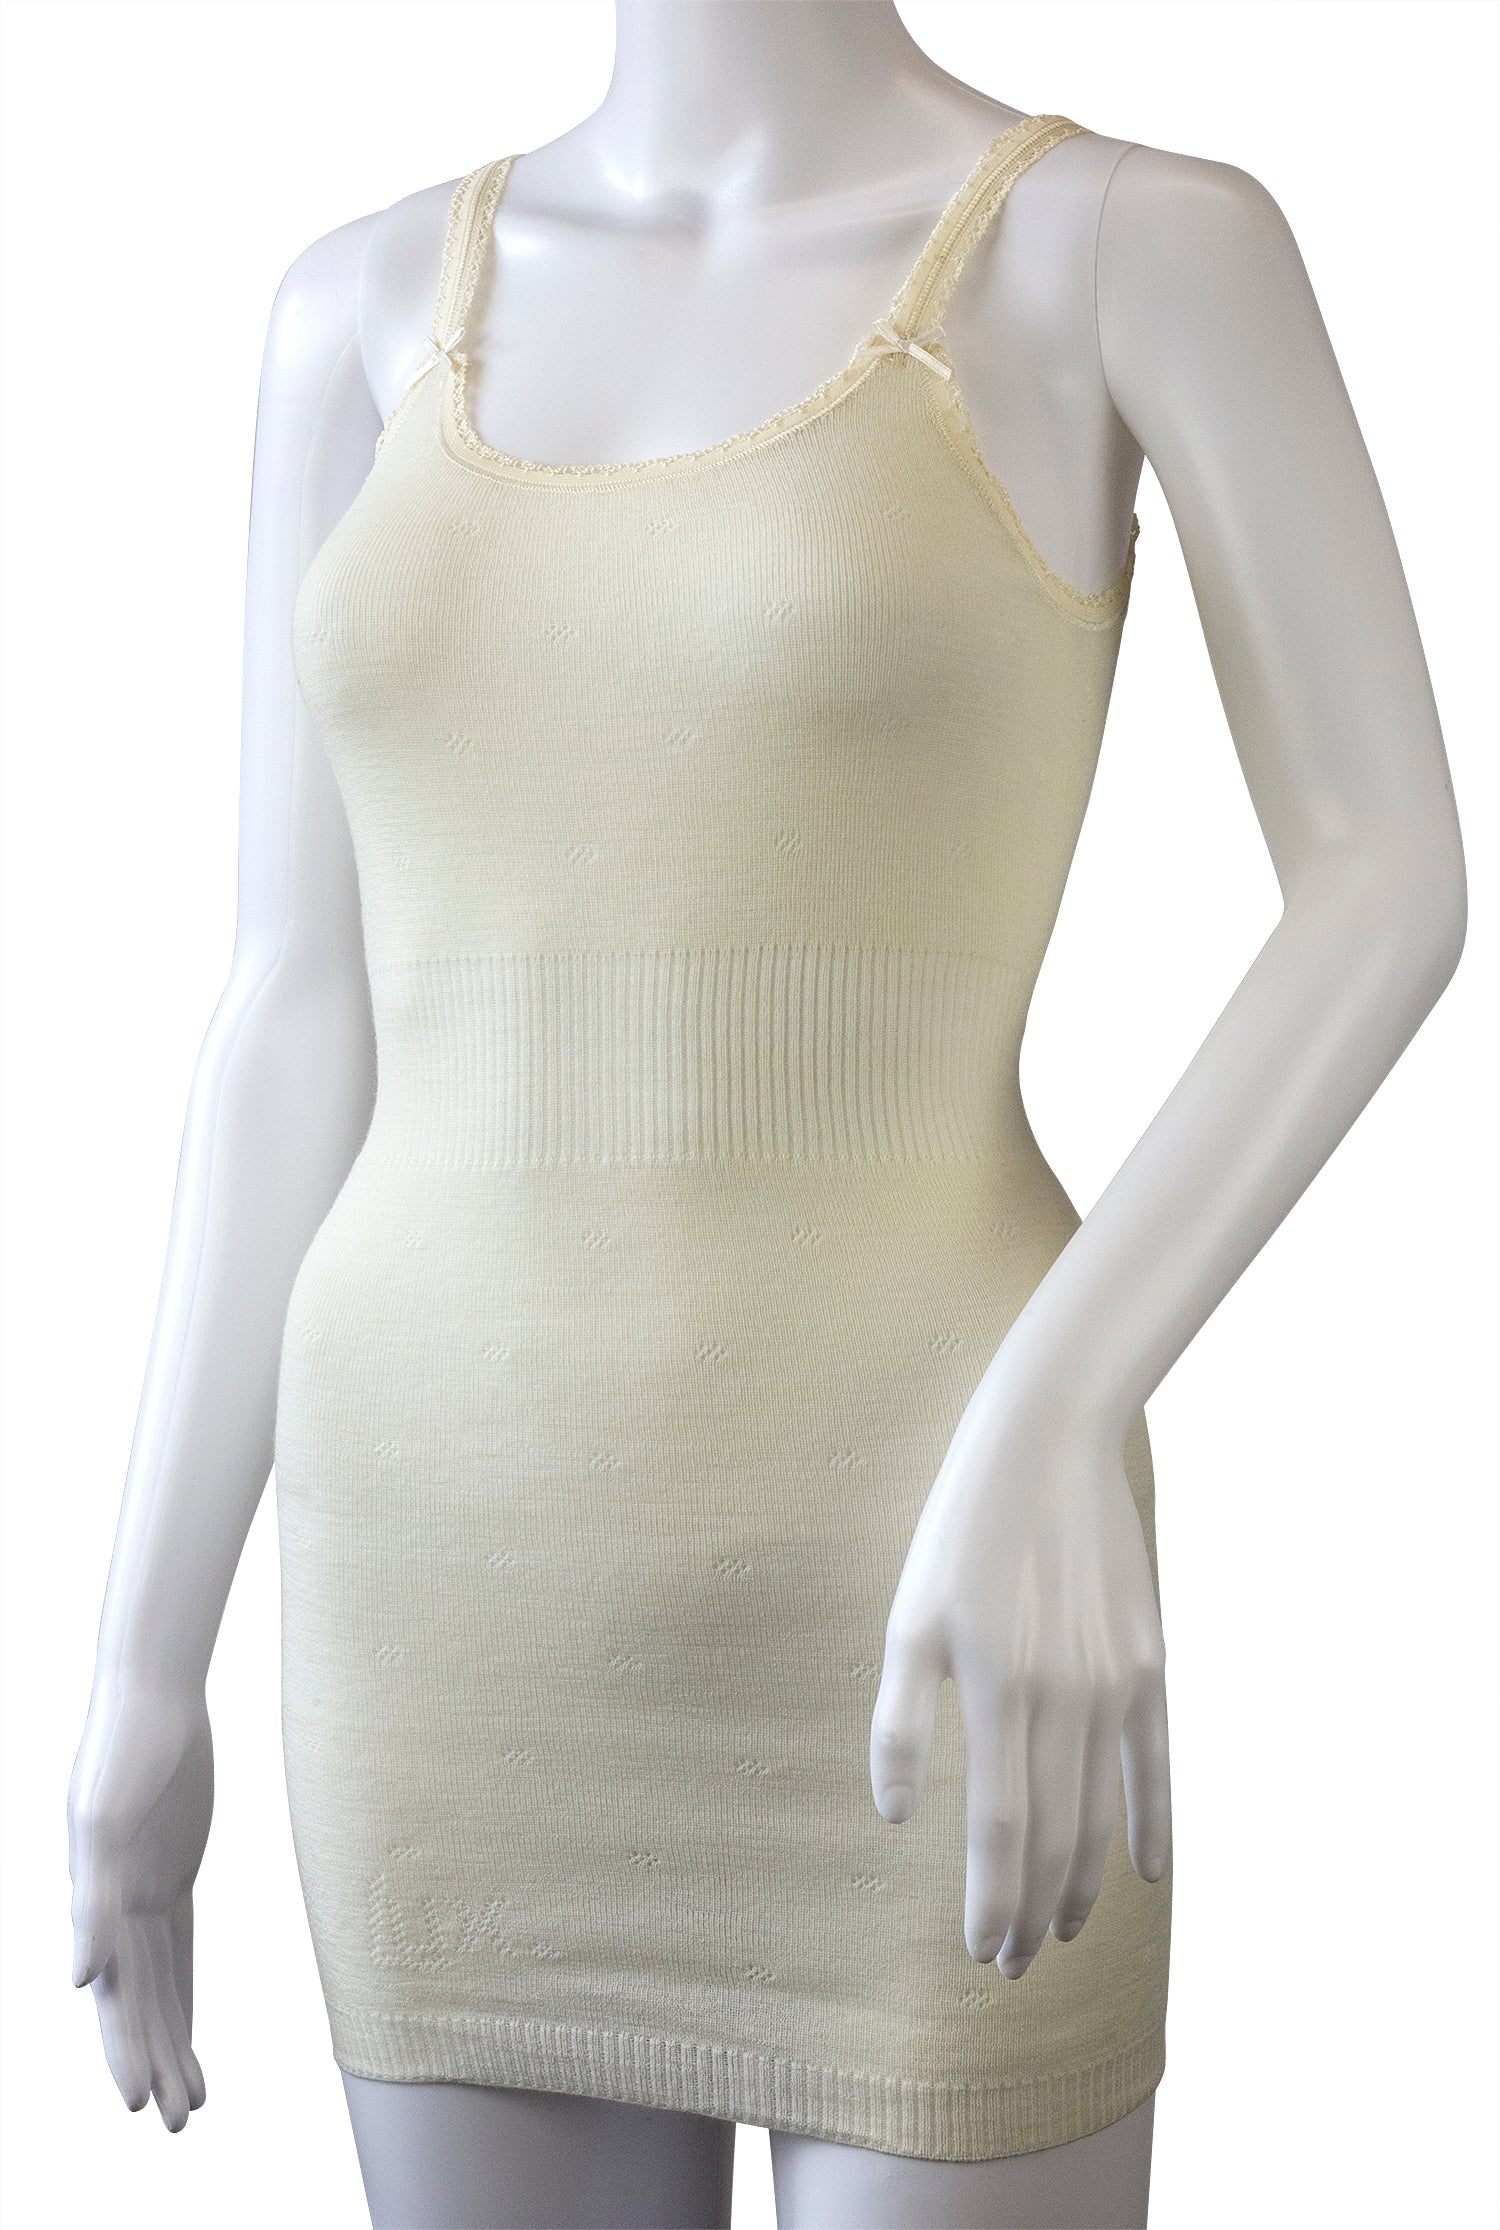 French Neck Vest, Cream